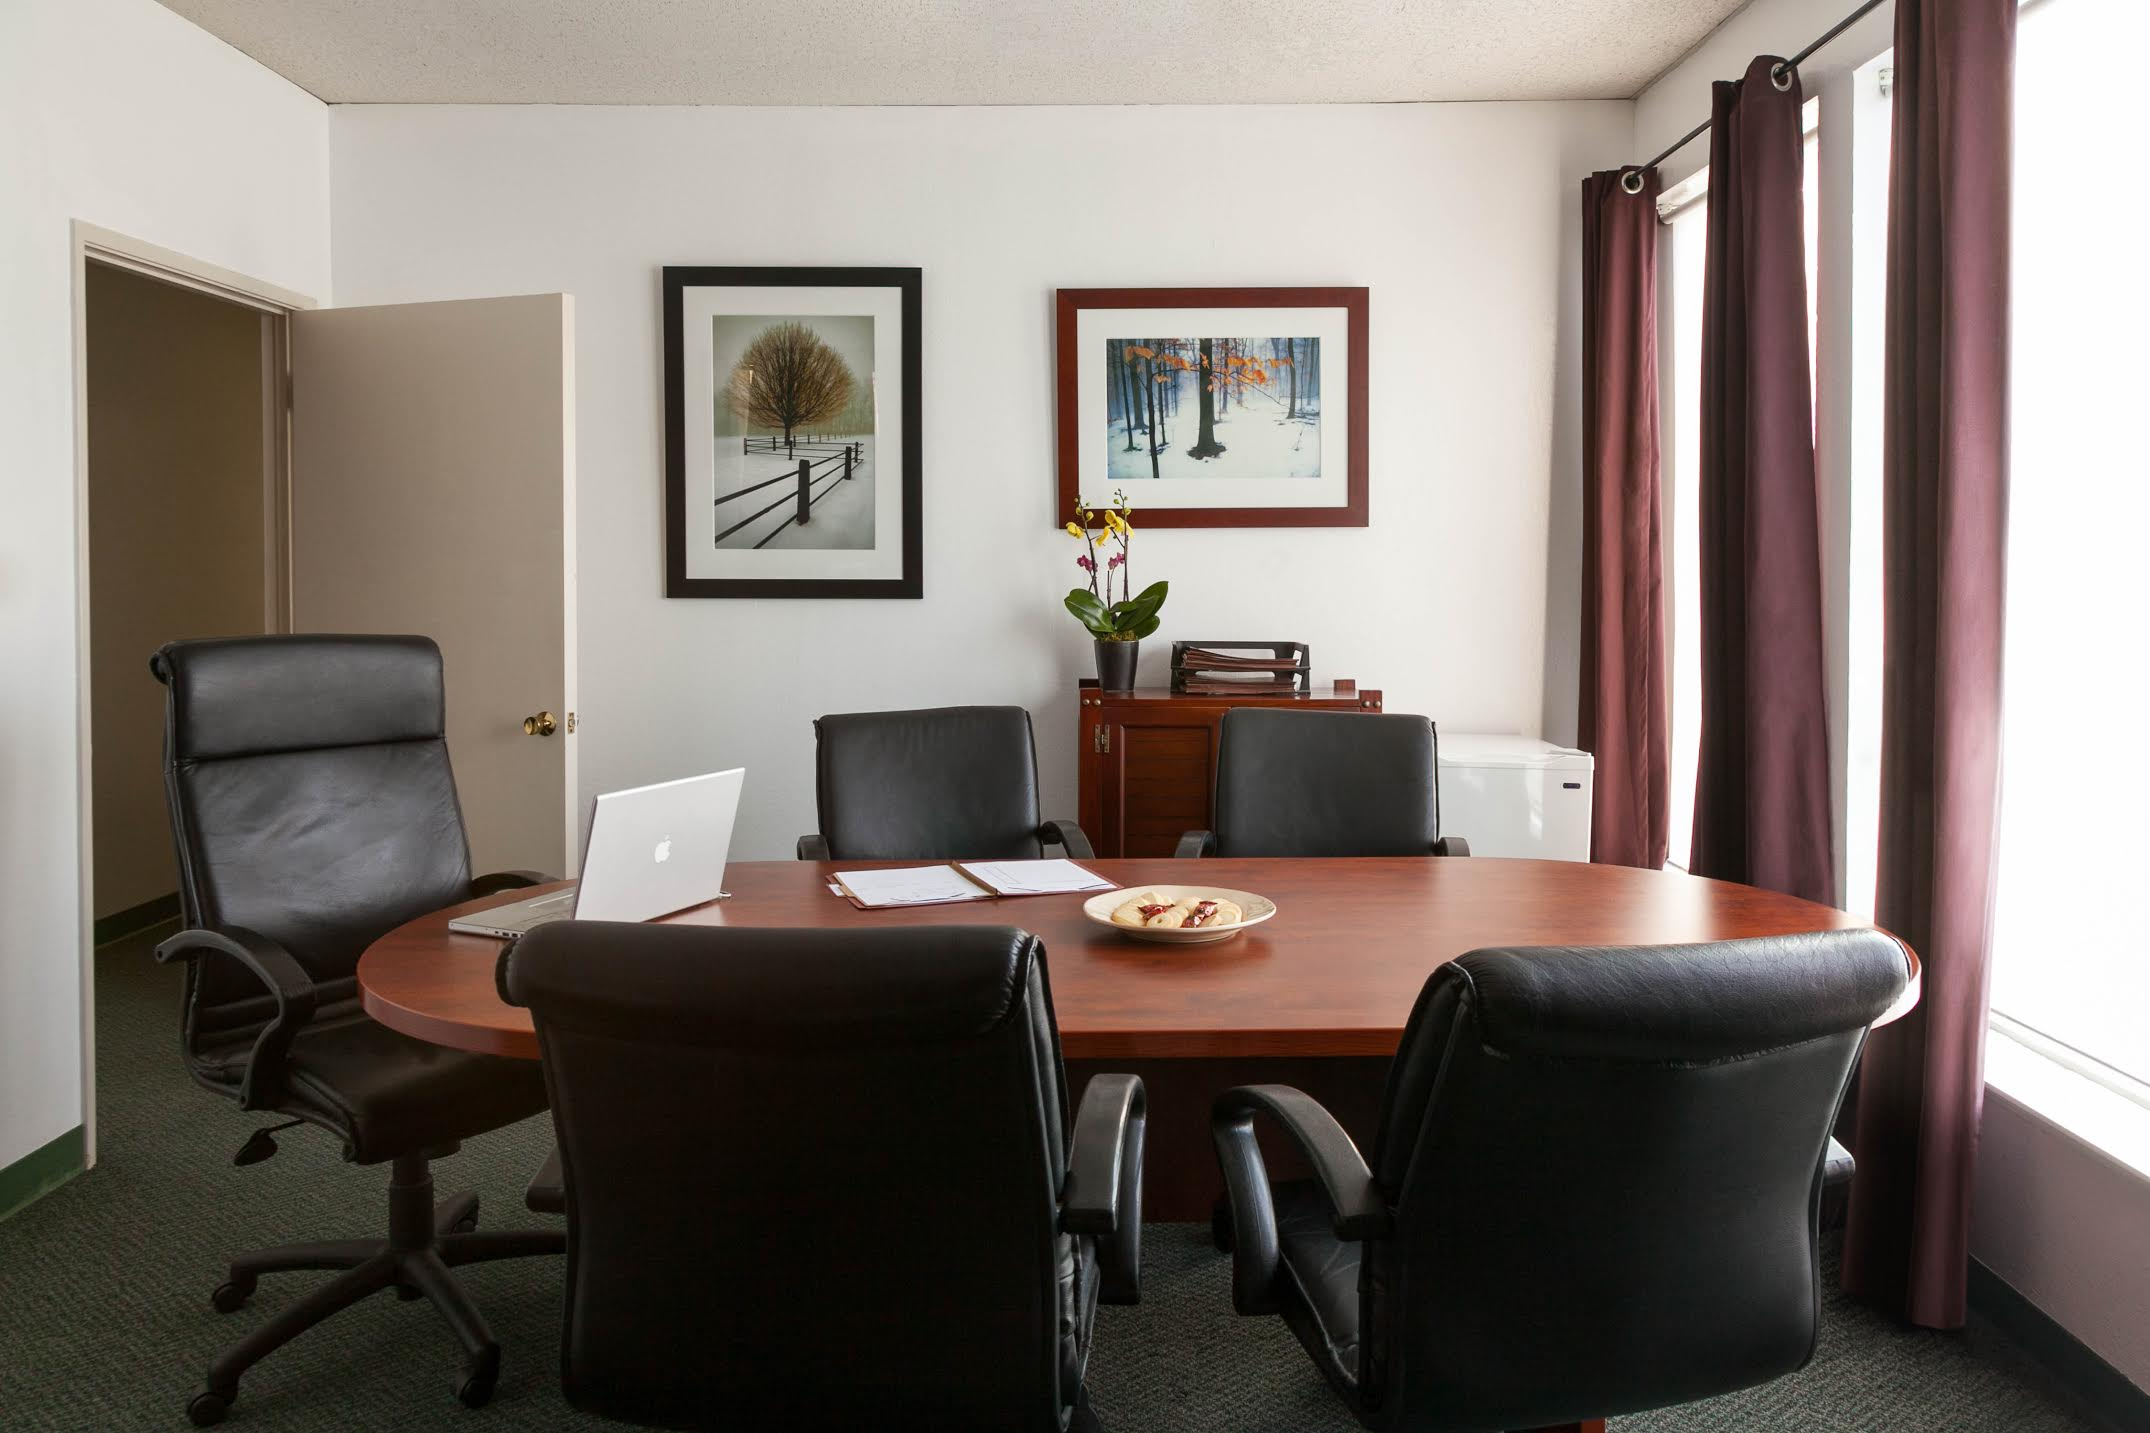 Samara Law office's conference room